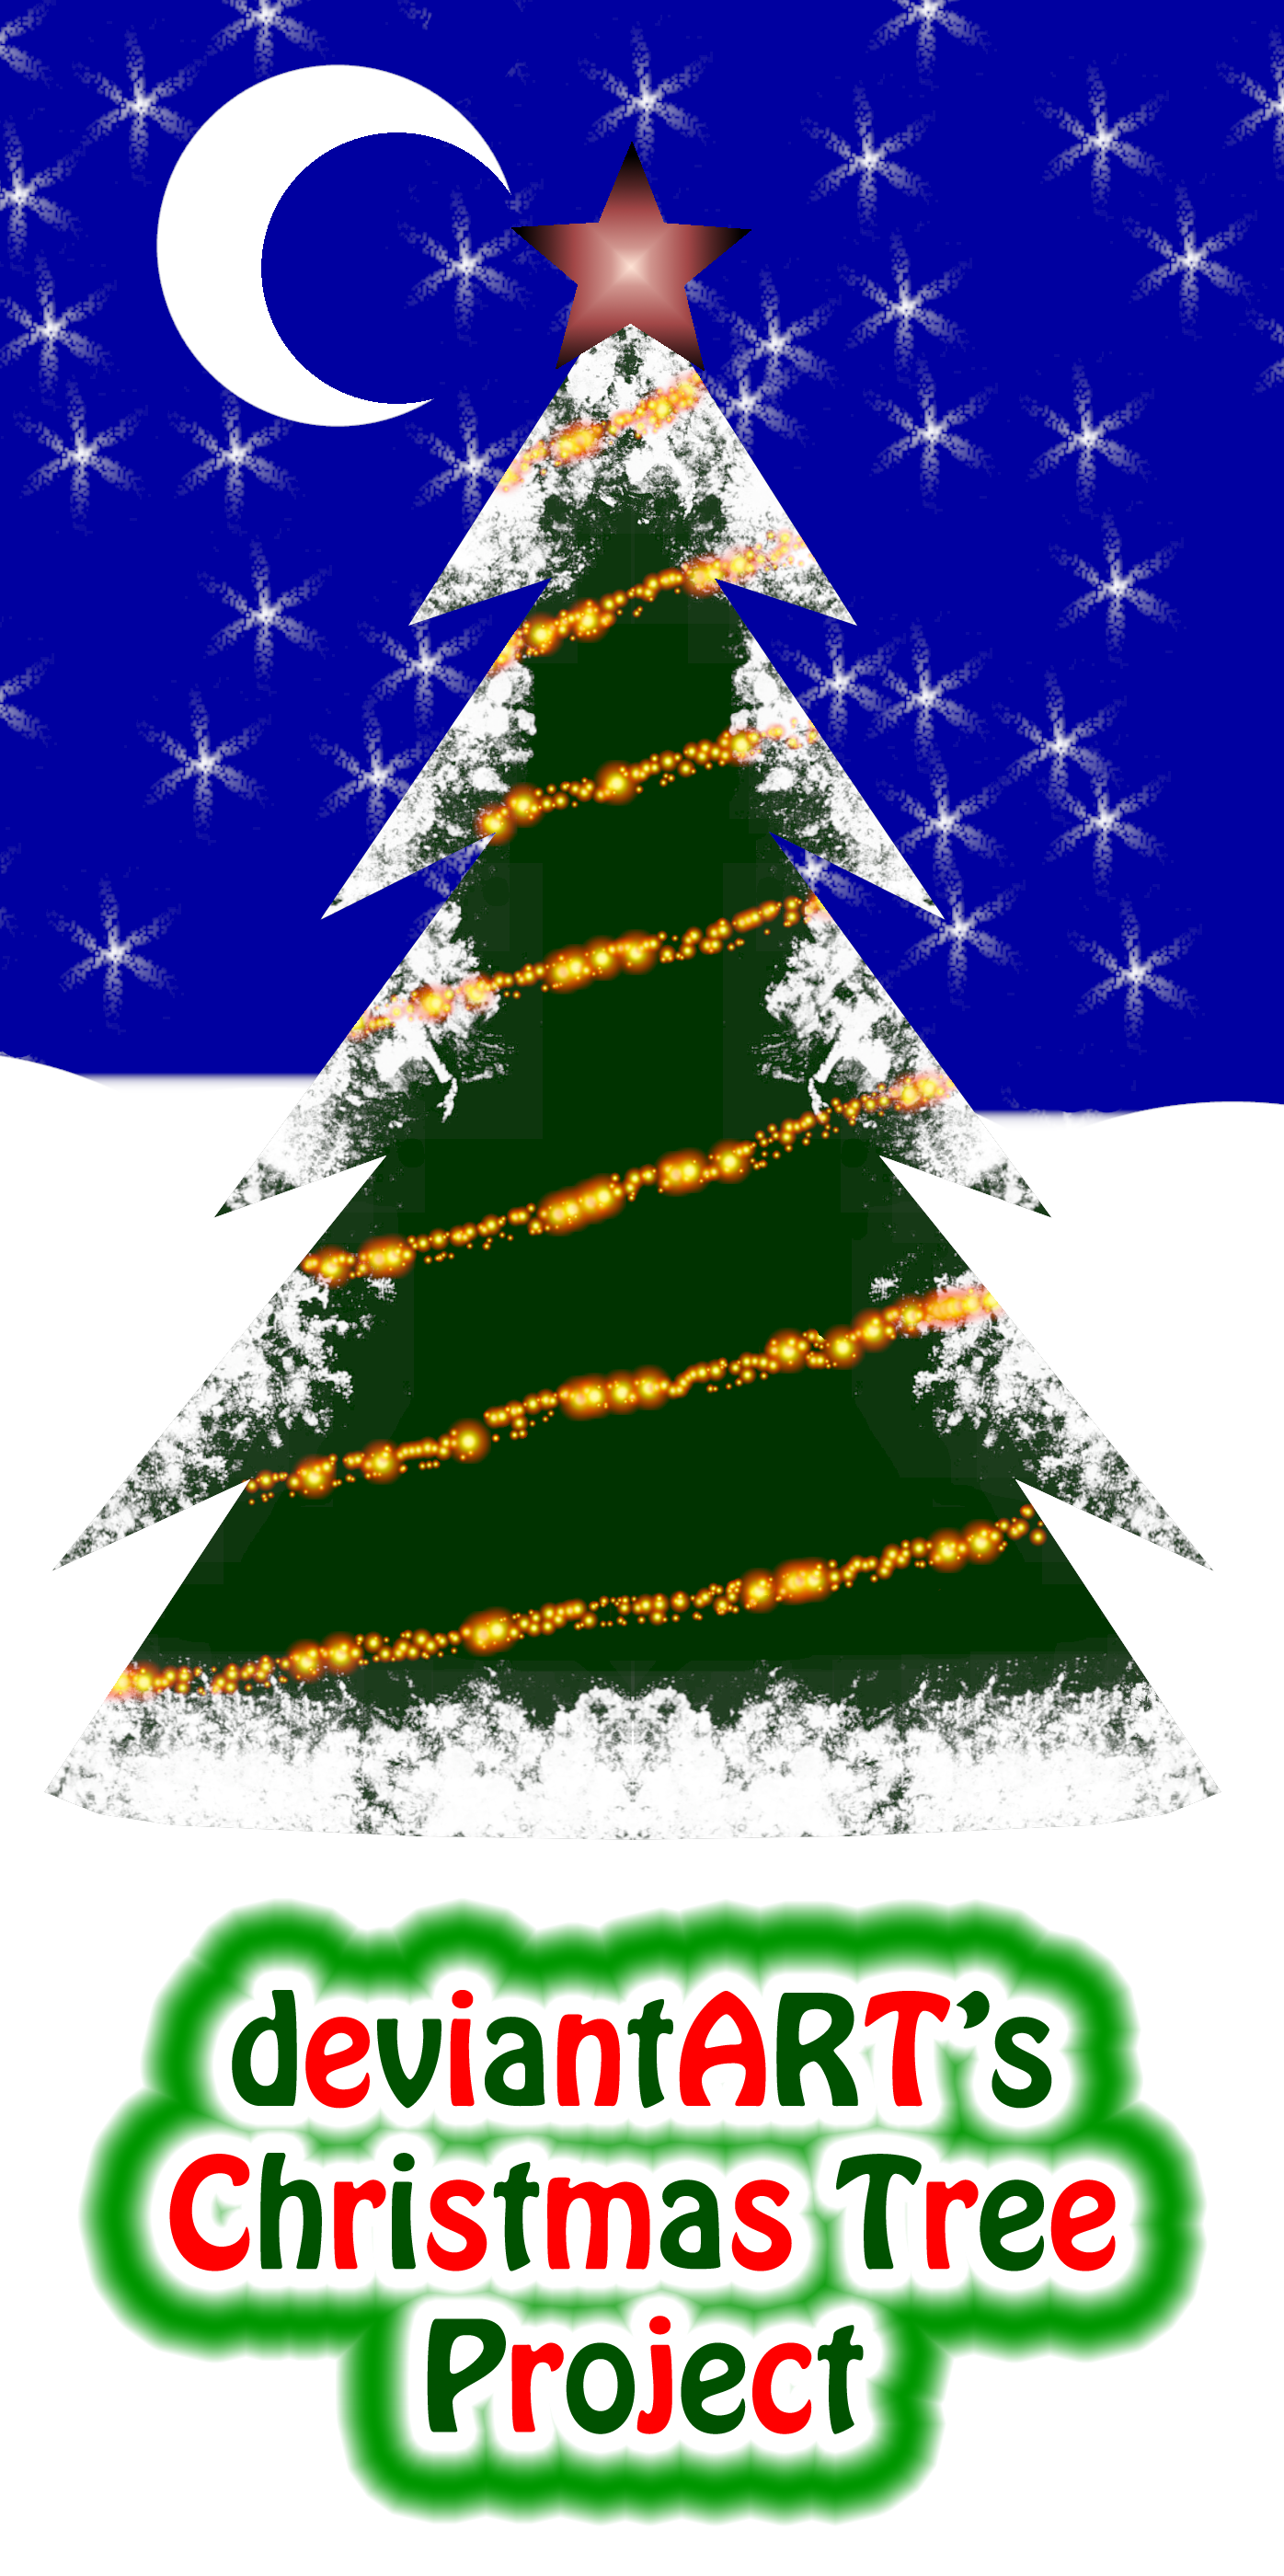 Christmas Tree Project 2020 With Photos deviantART's Official Christmas Tree Project 2020 by MelMuff on